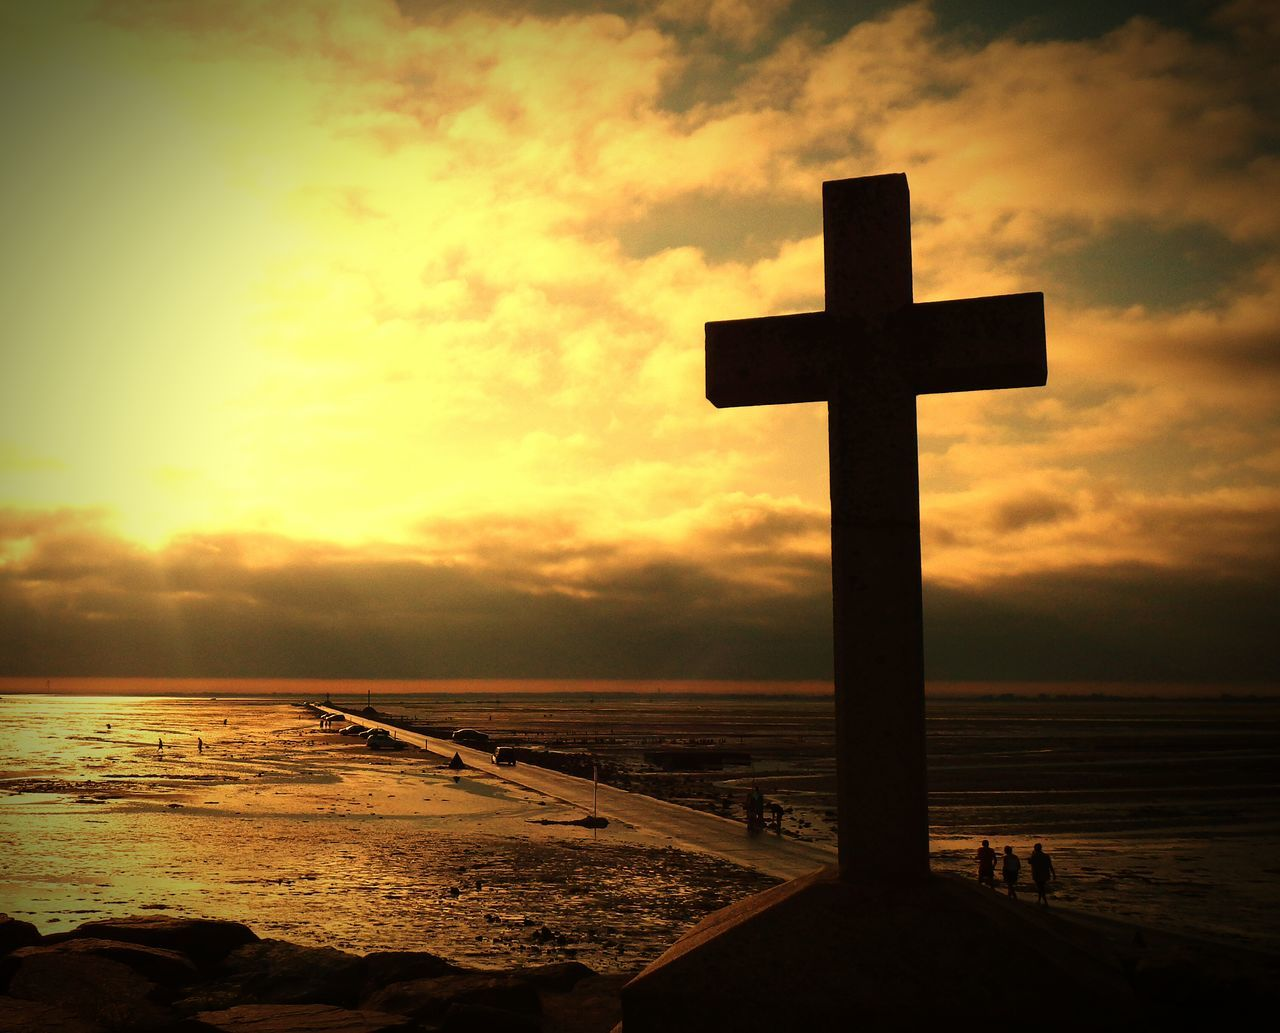 Low Angle View Of Silhouette Cross By Sea Against Cloudy Sky During Sunset